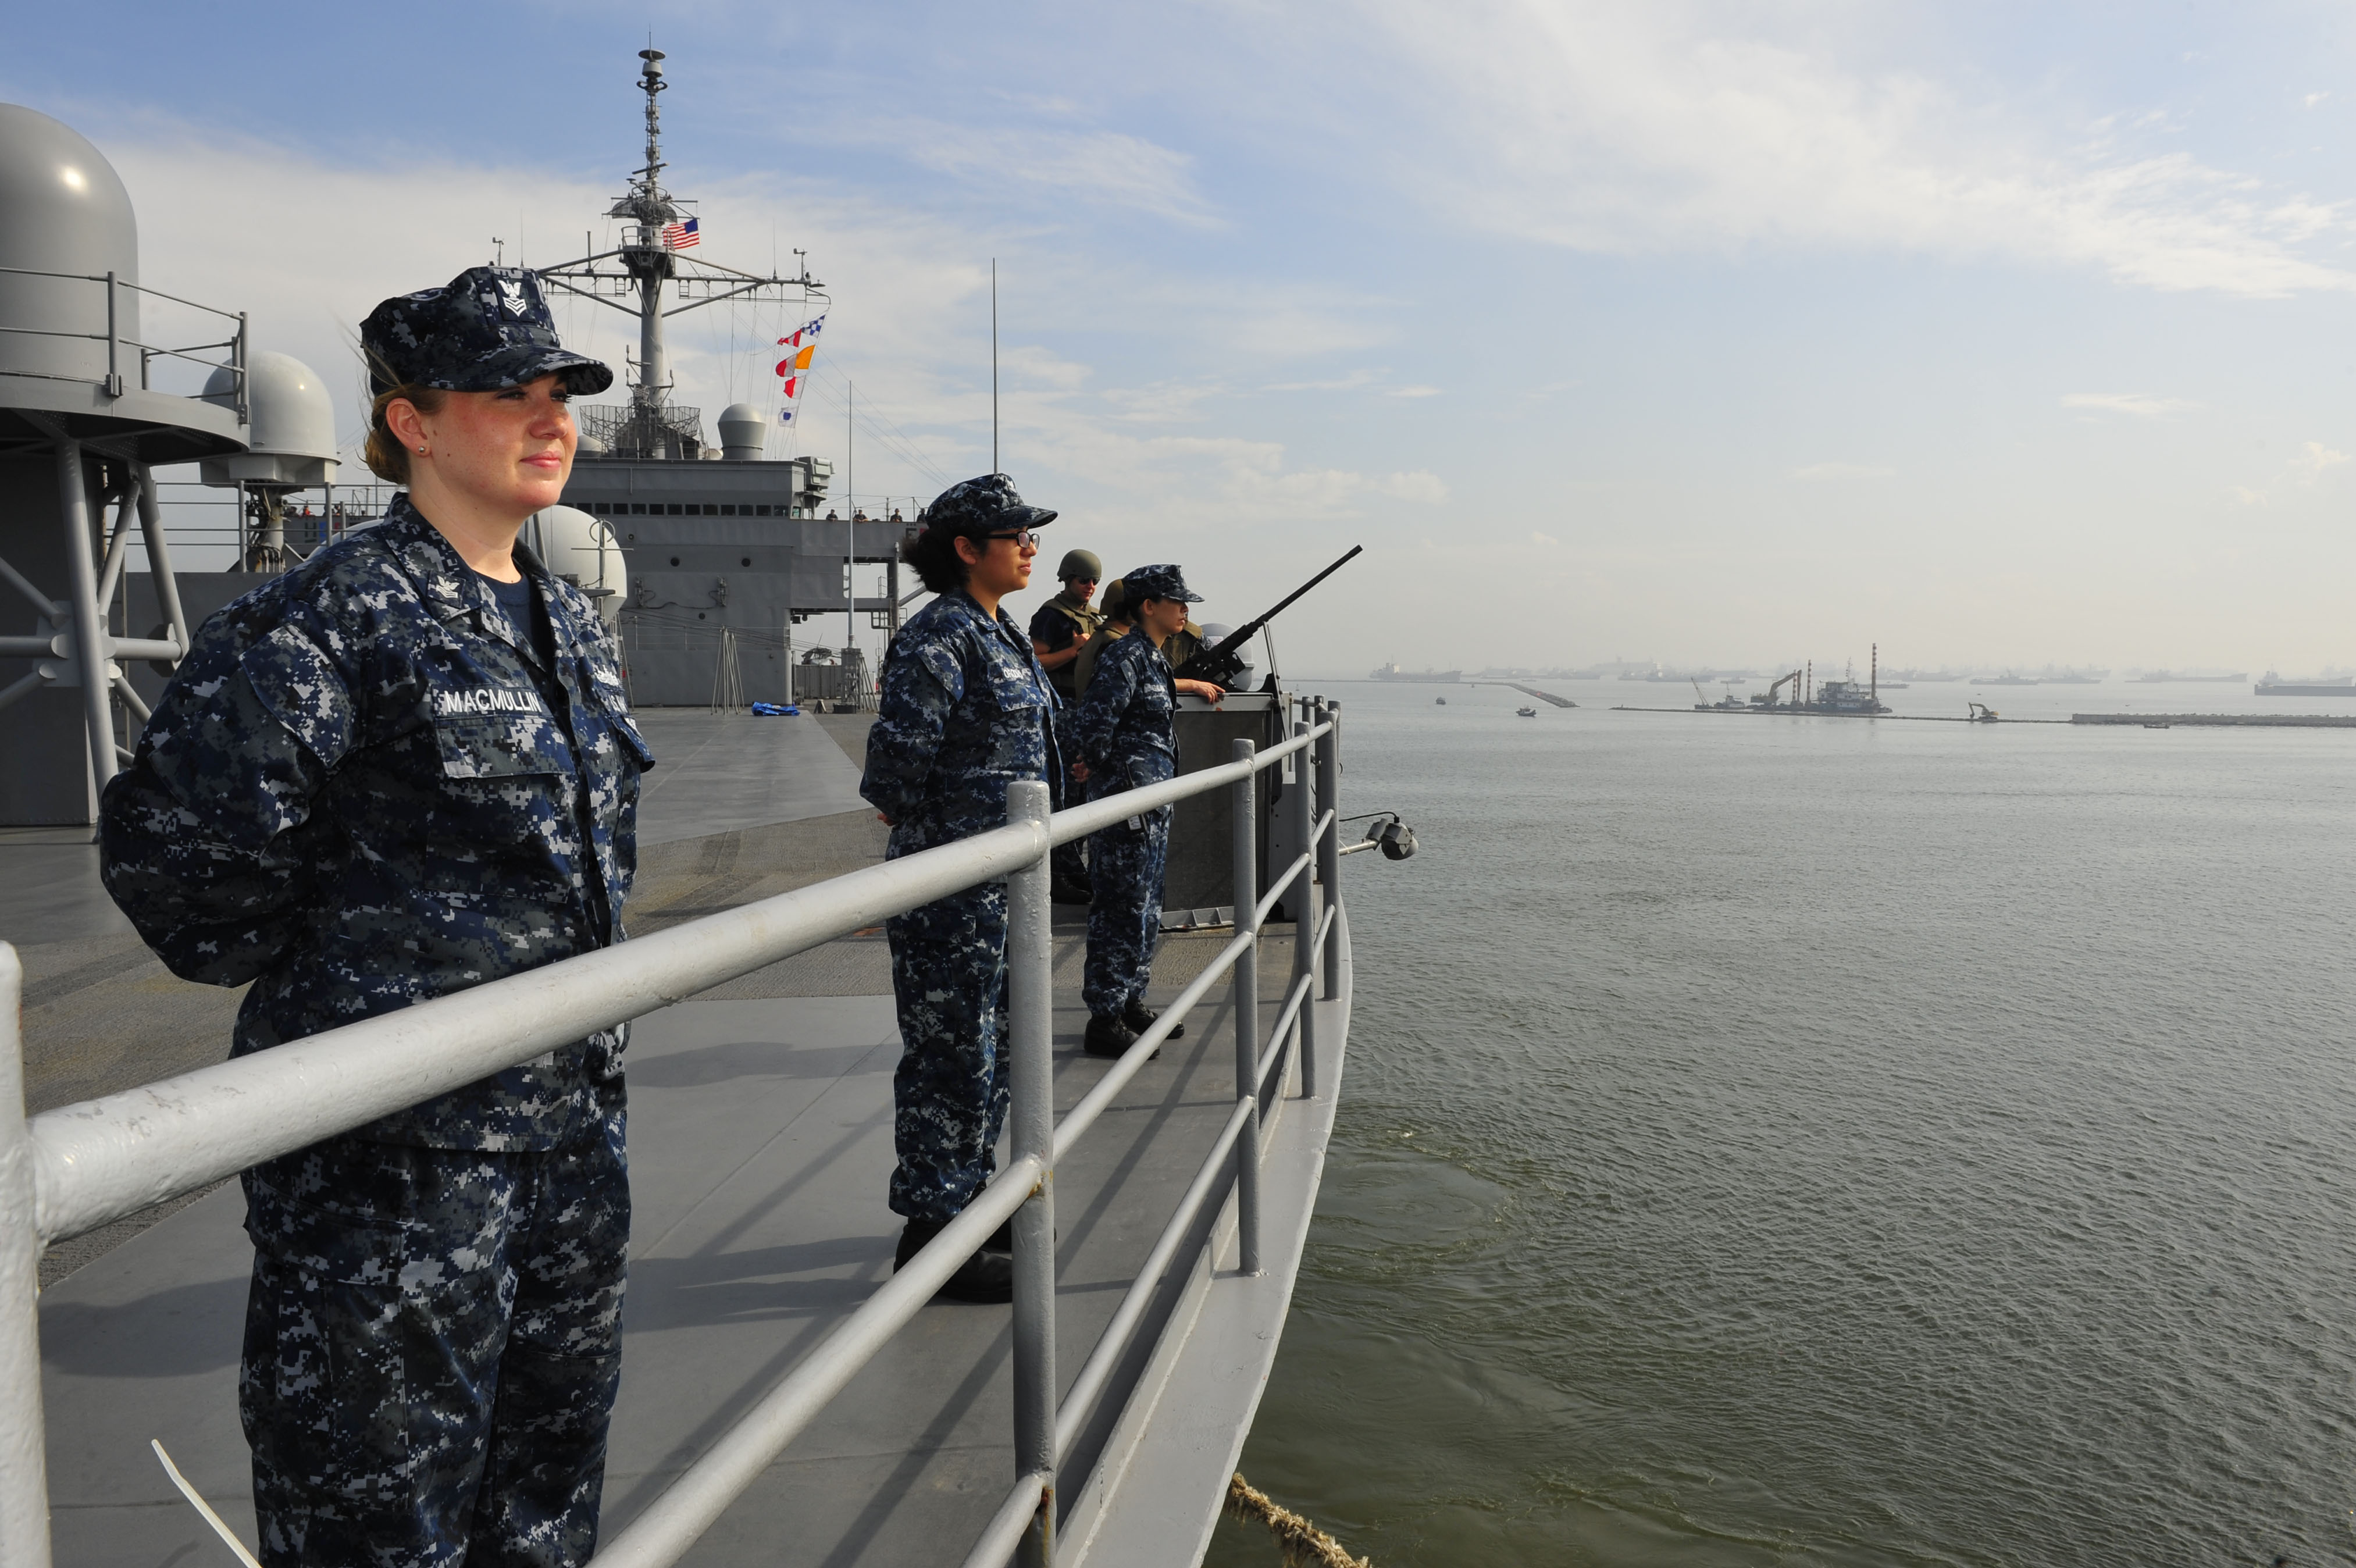 USS Blue Ridge to Strengthen Ties During Indonesia Visit